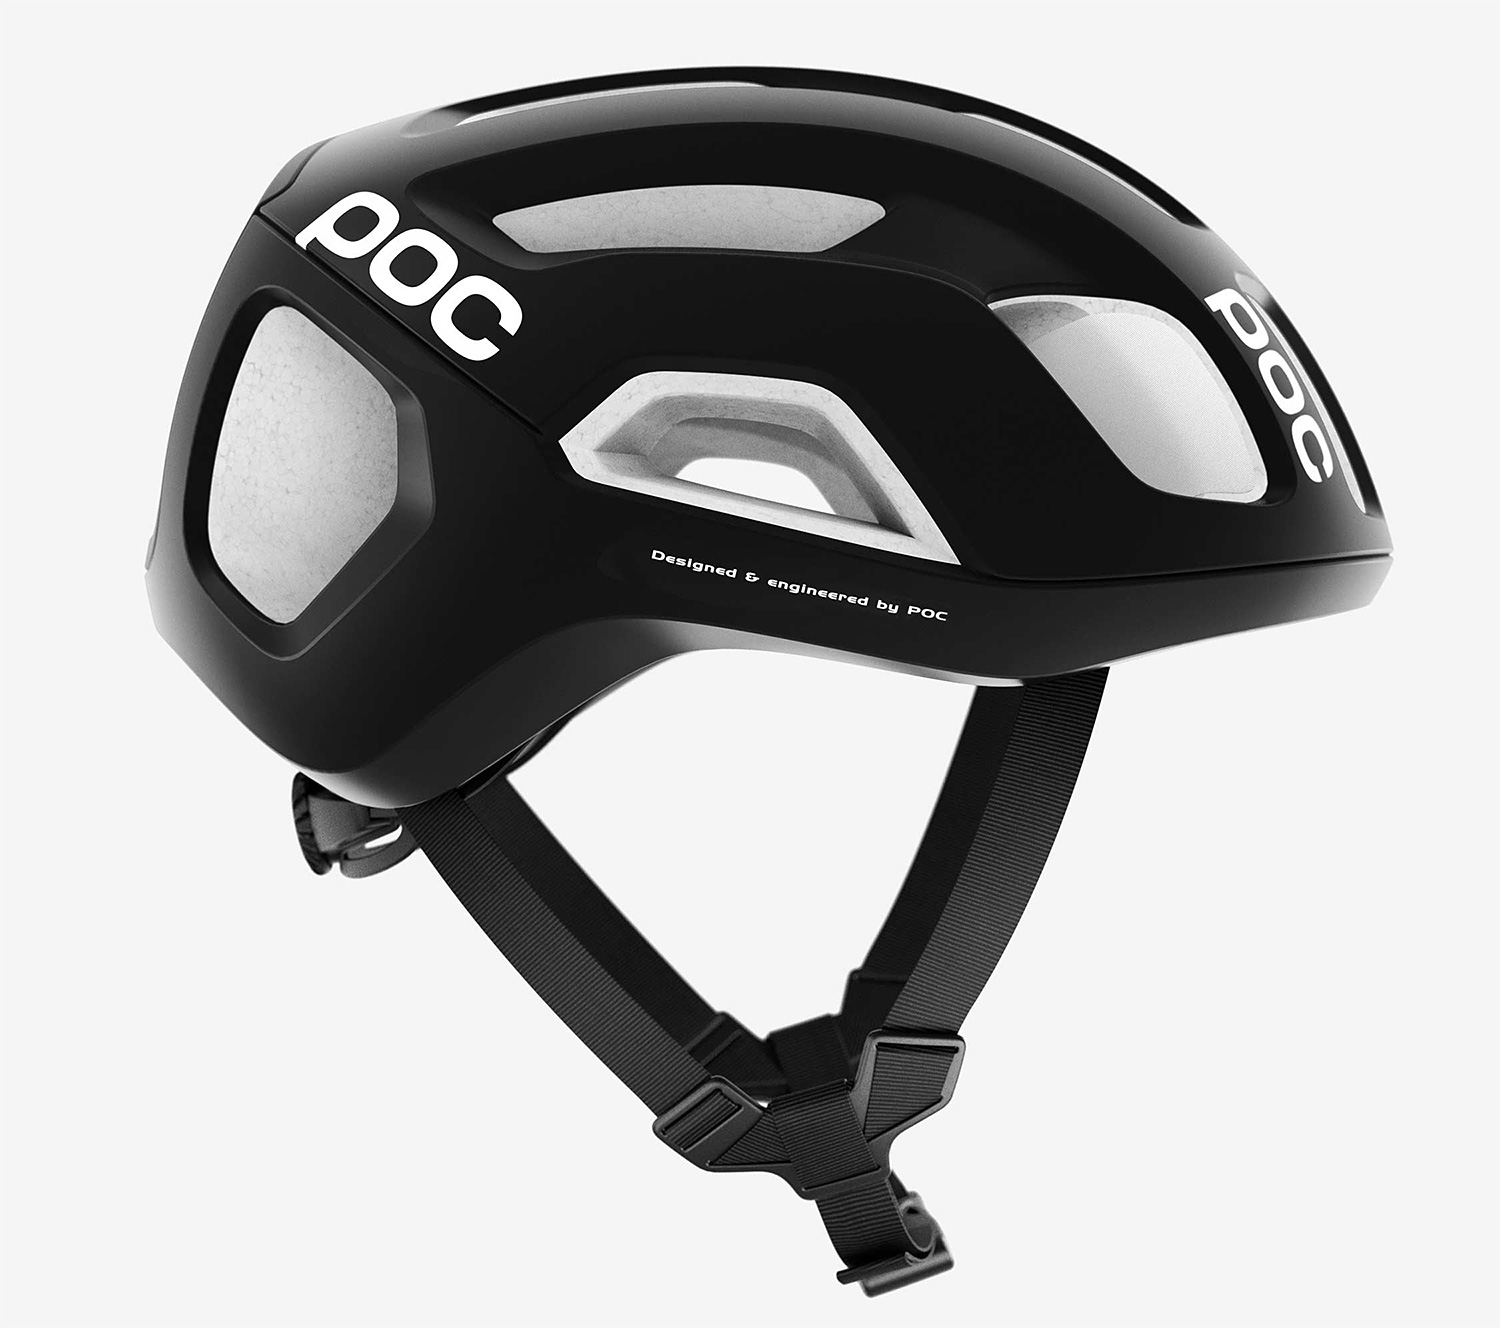 This Helmet Stores Your Medical Data on an NFC Chip at werd.com